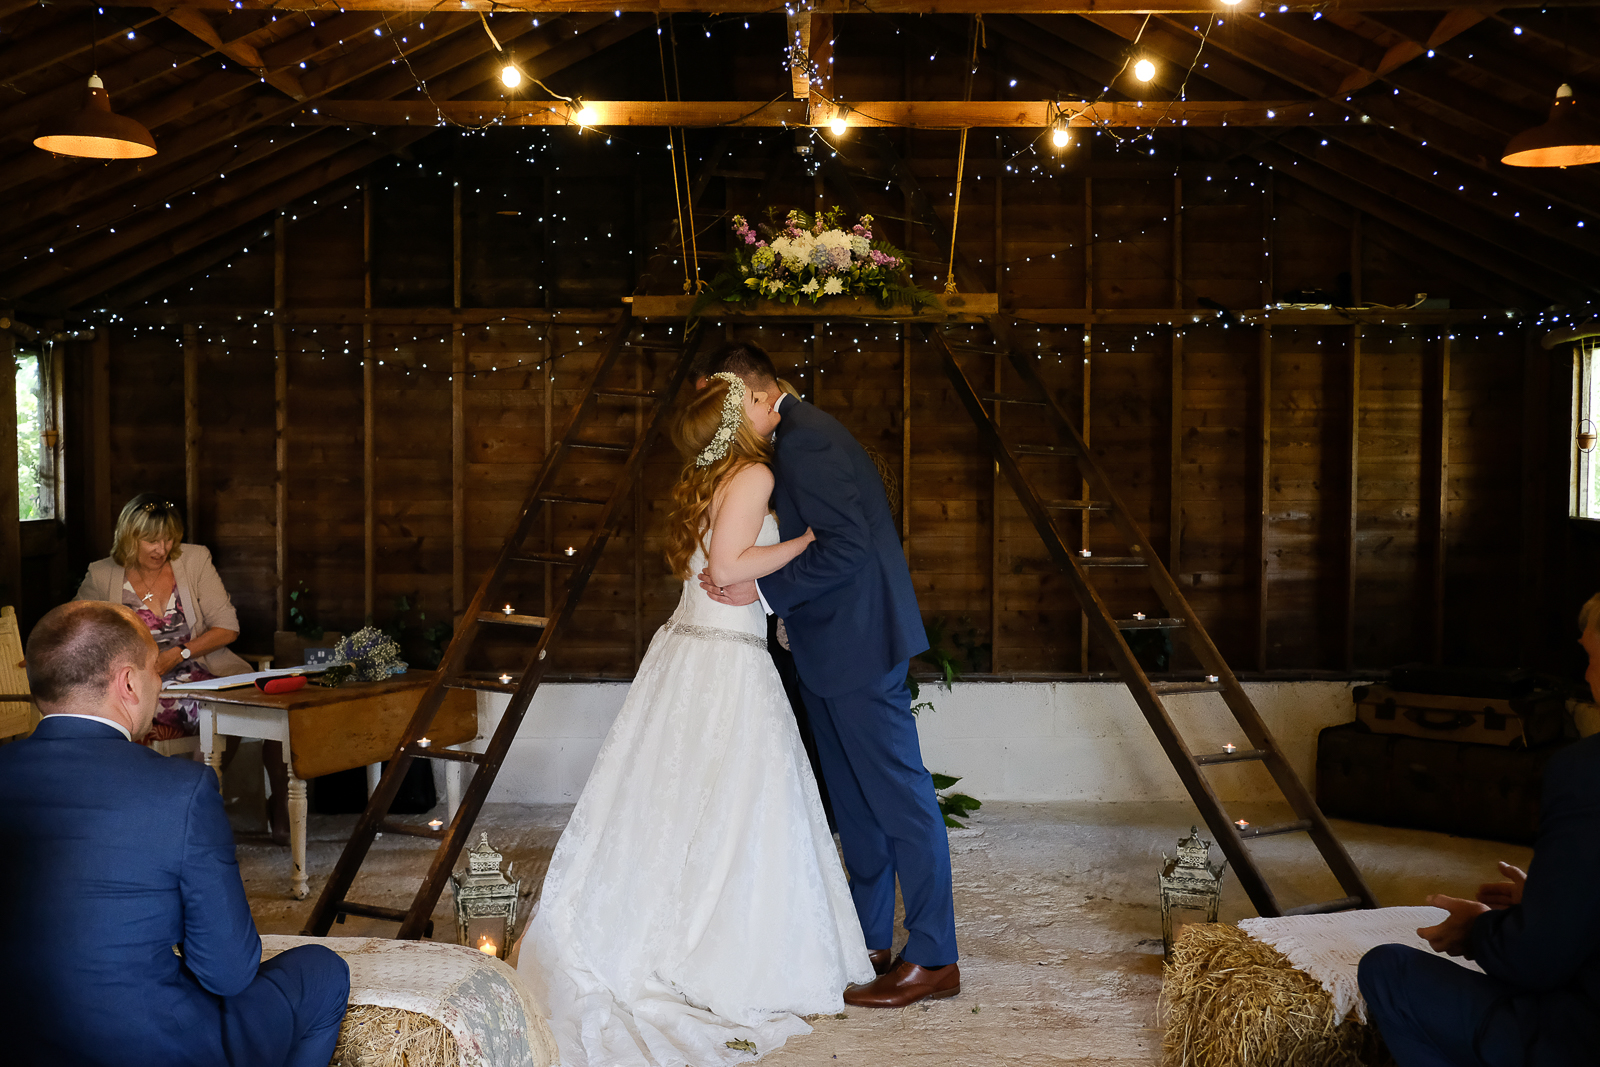 Rustic elopement at The Cow Shed in Cornwall 039.jpg